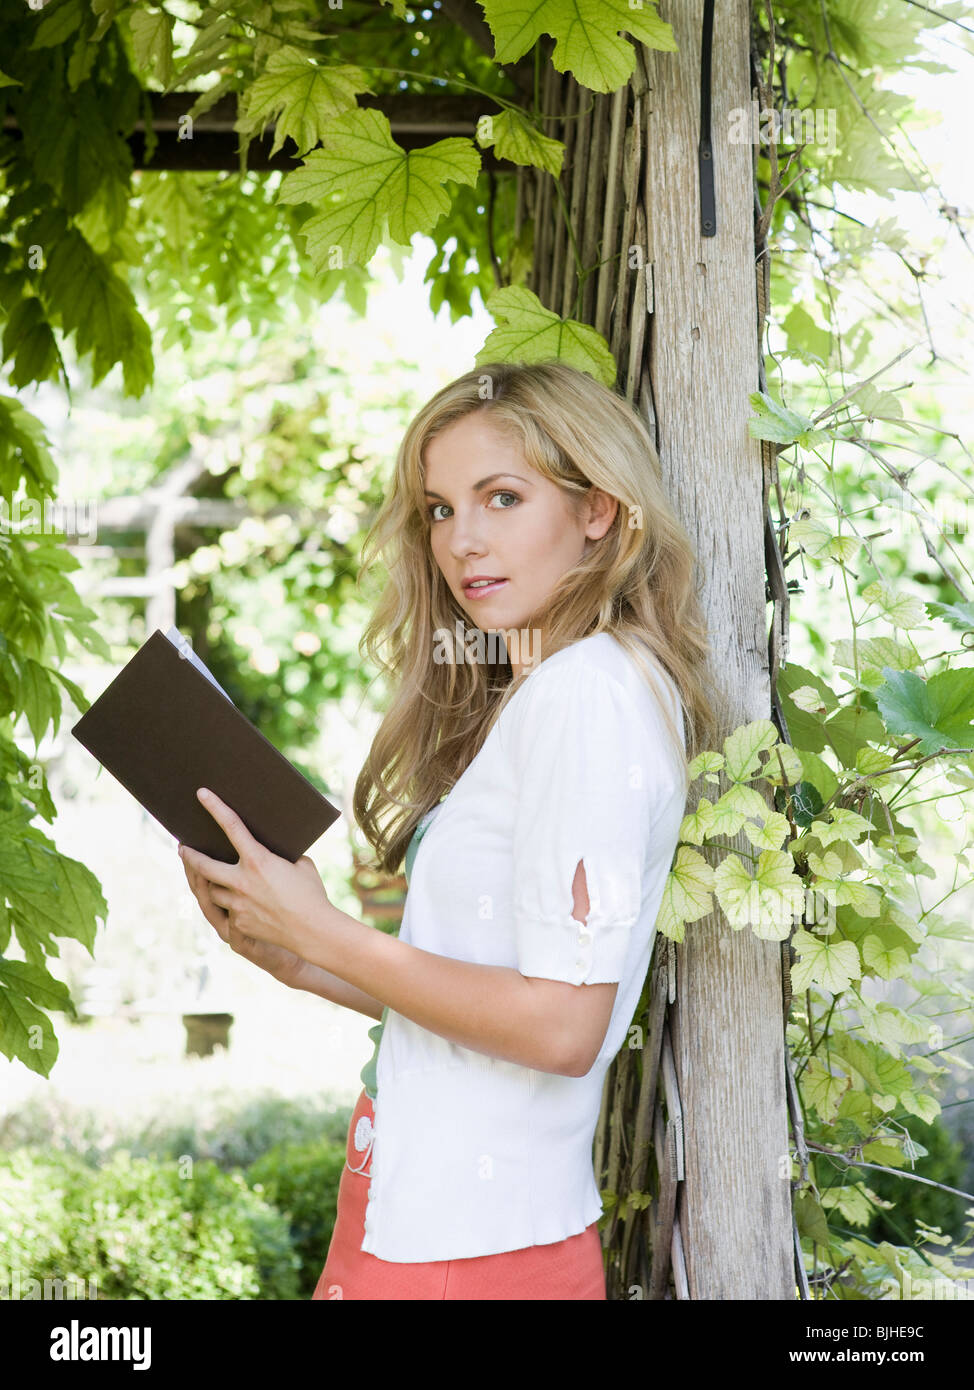 woman in the garden reading a book - Stock Image